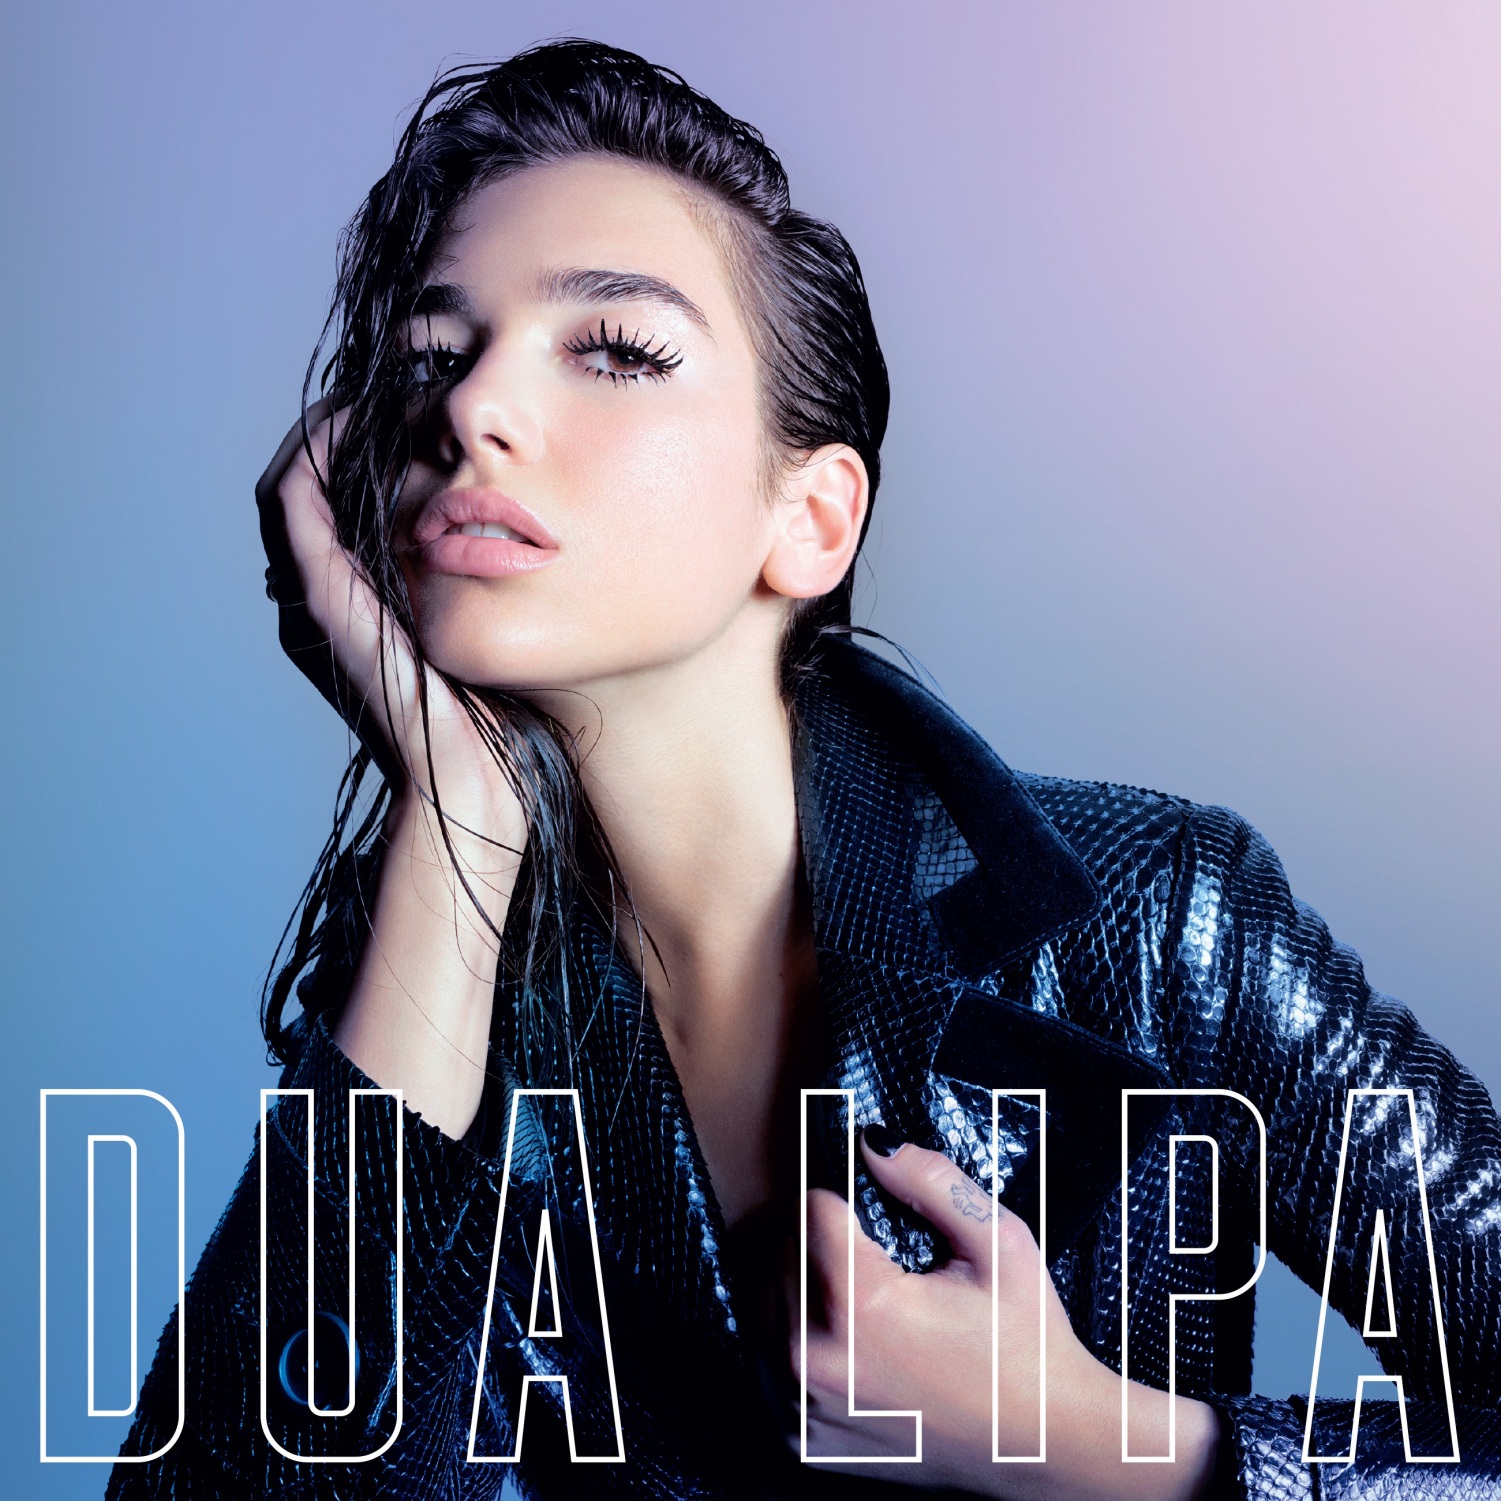 Dua Lipa's album cover